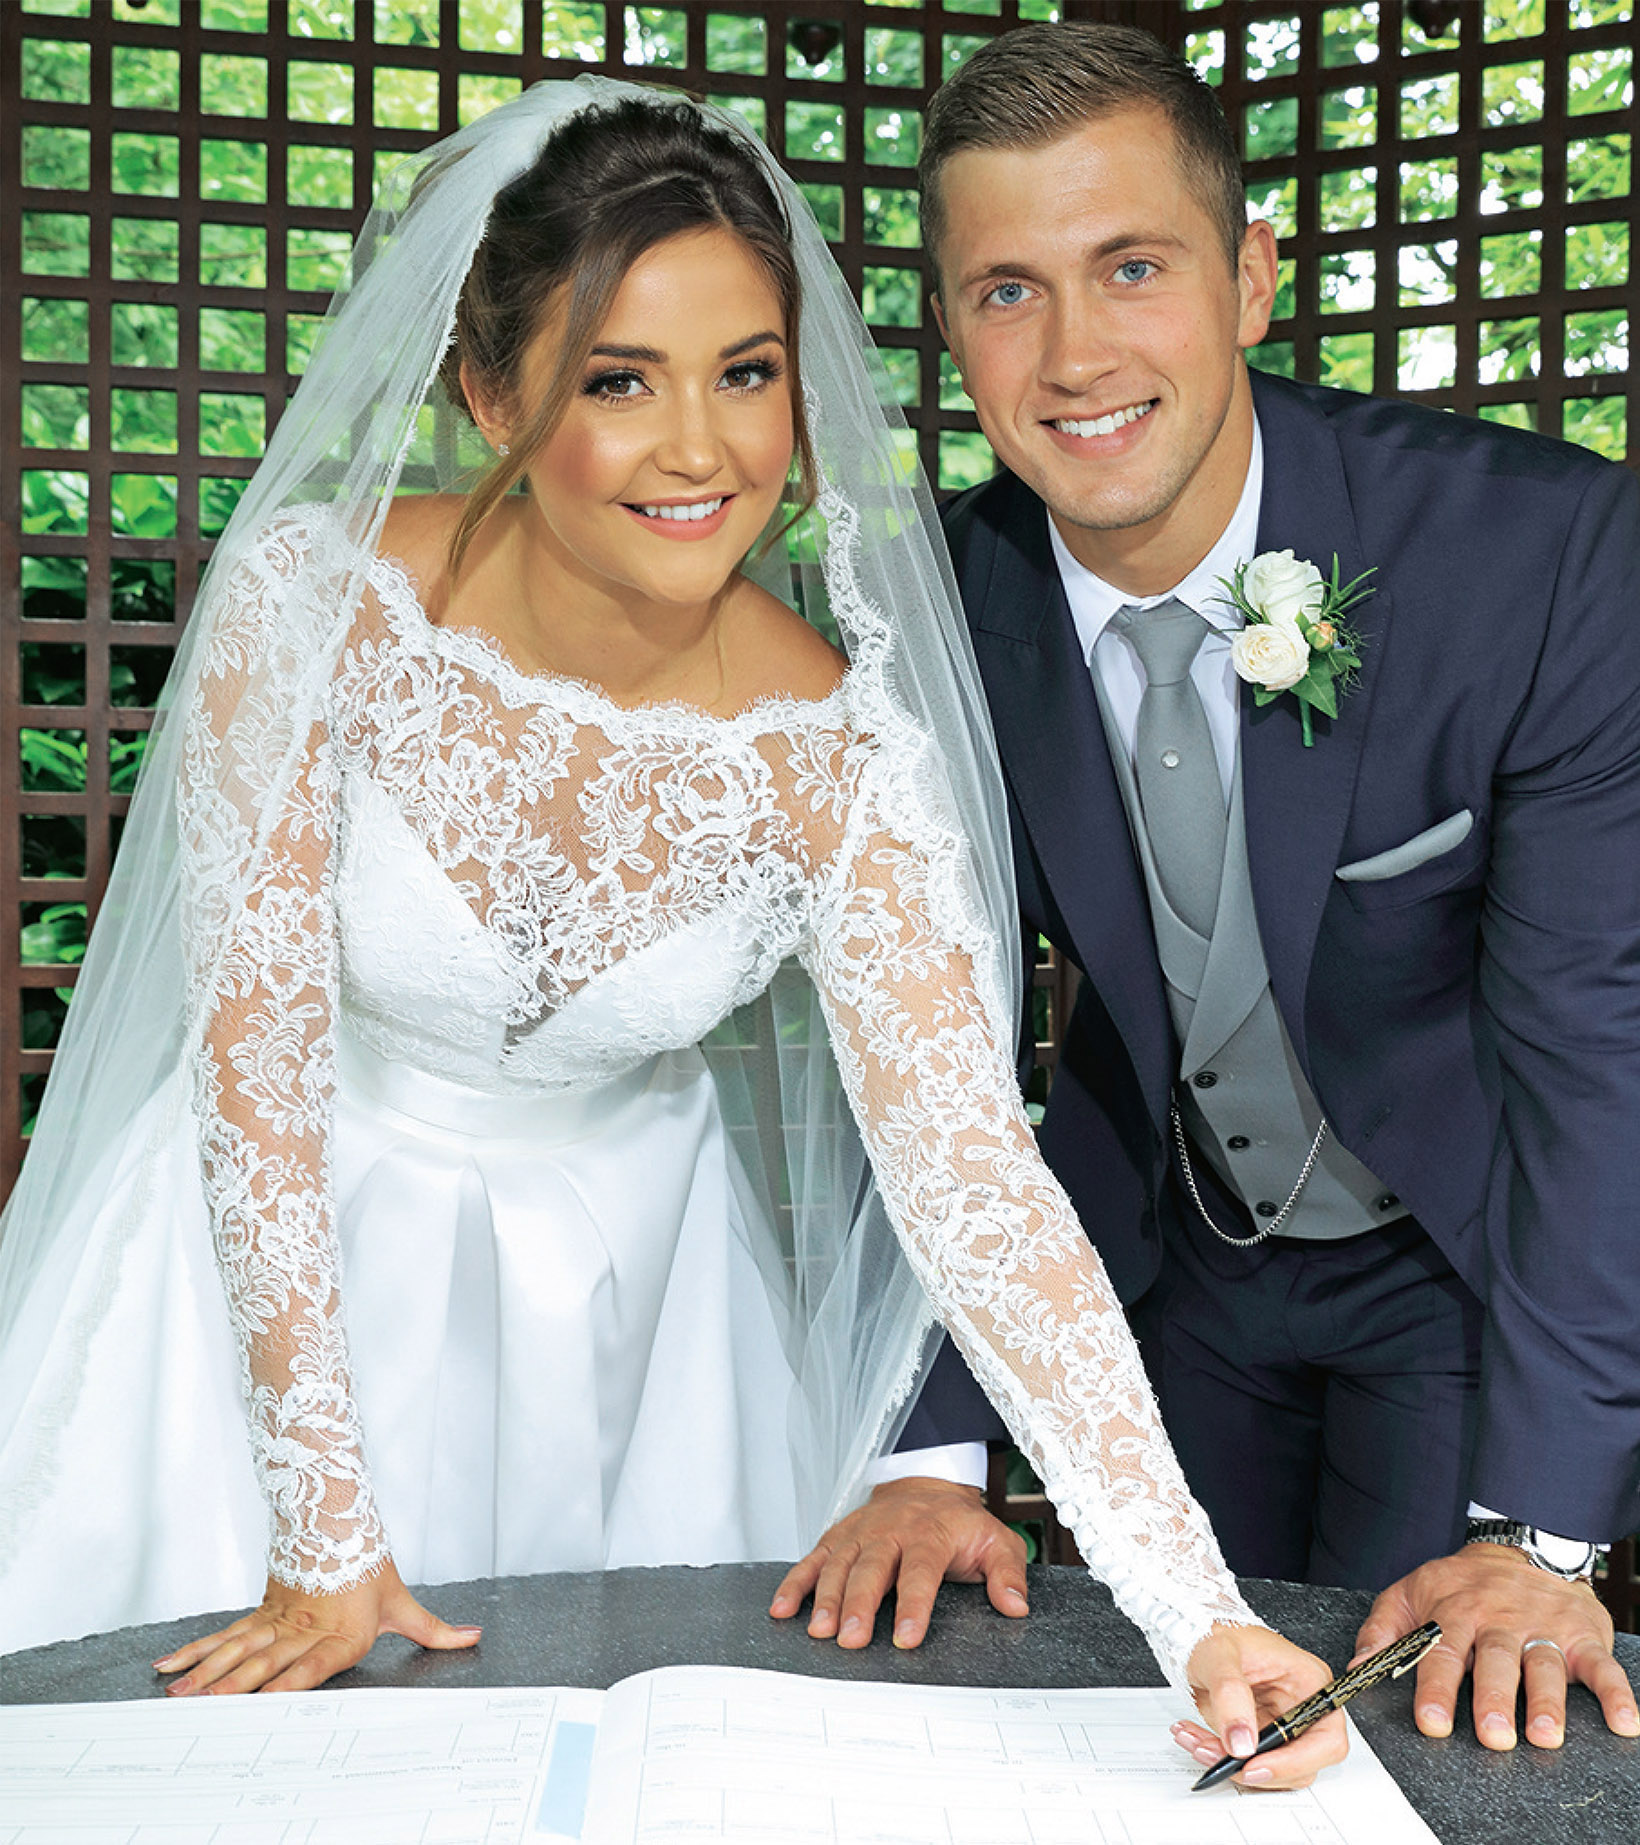 tv-couples-married-in-real-life-jaqueline-joss-dan-osborne-wedding-dresses-by-designer-suzanneneville02